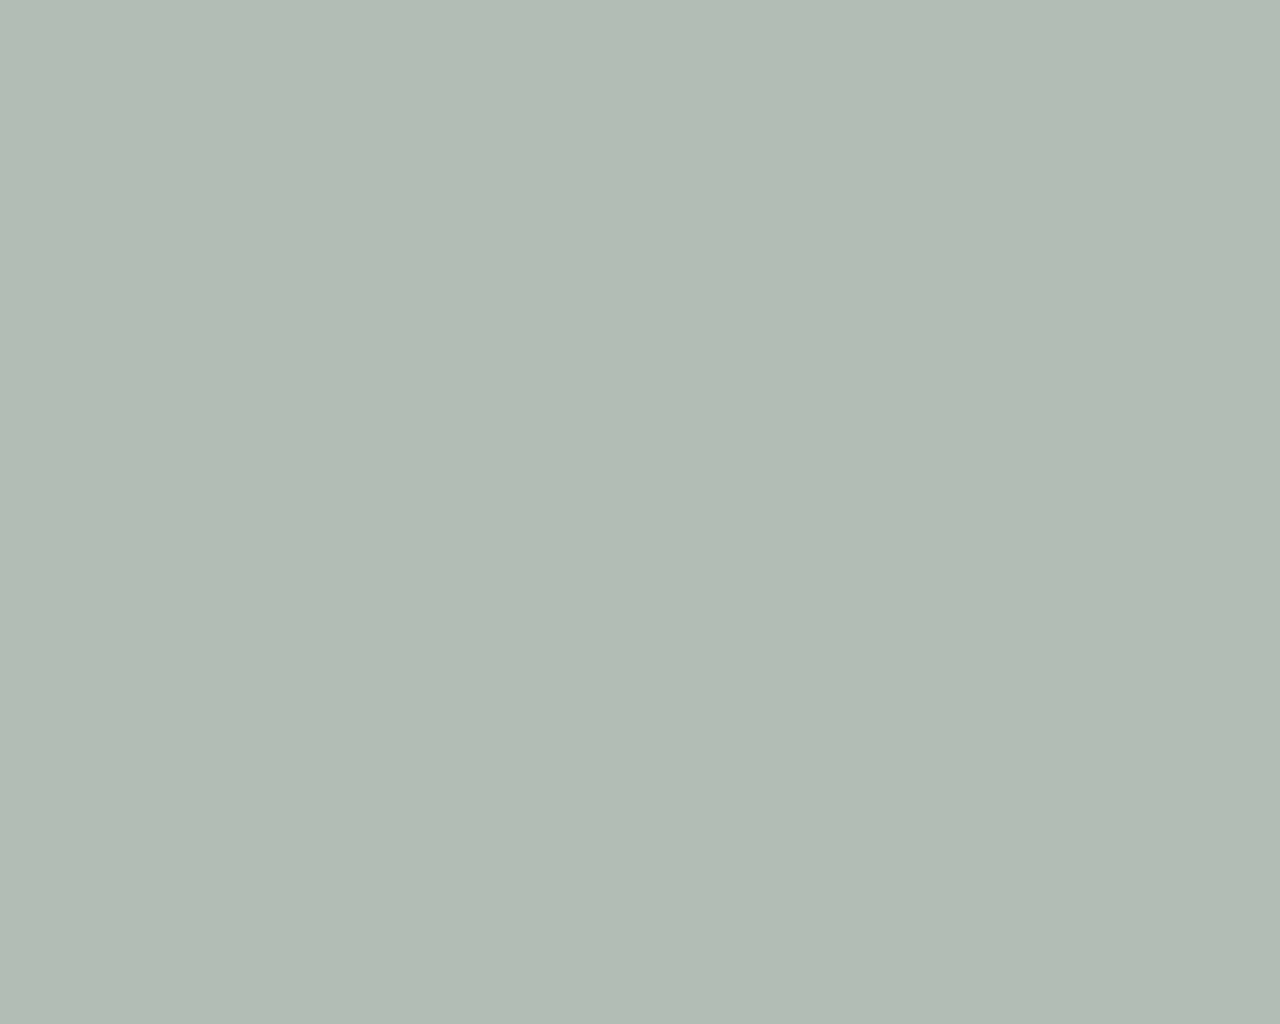 1280x1024 Ash Grey Solid Color Background